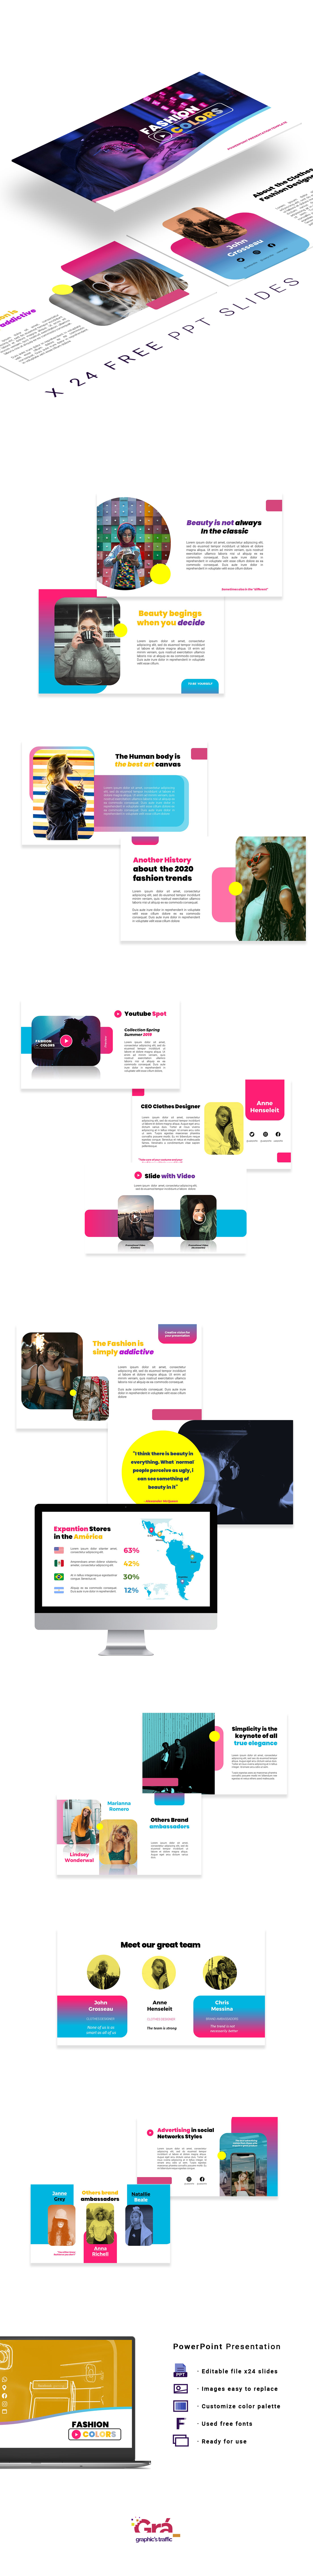 download editable Fashion  free freebie Powerpoint PPT slides template 自由